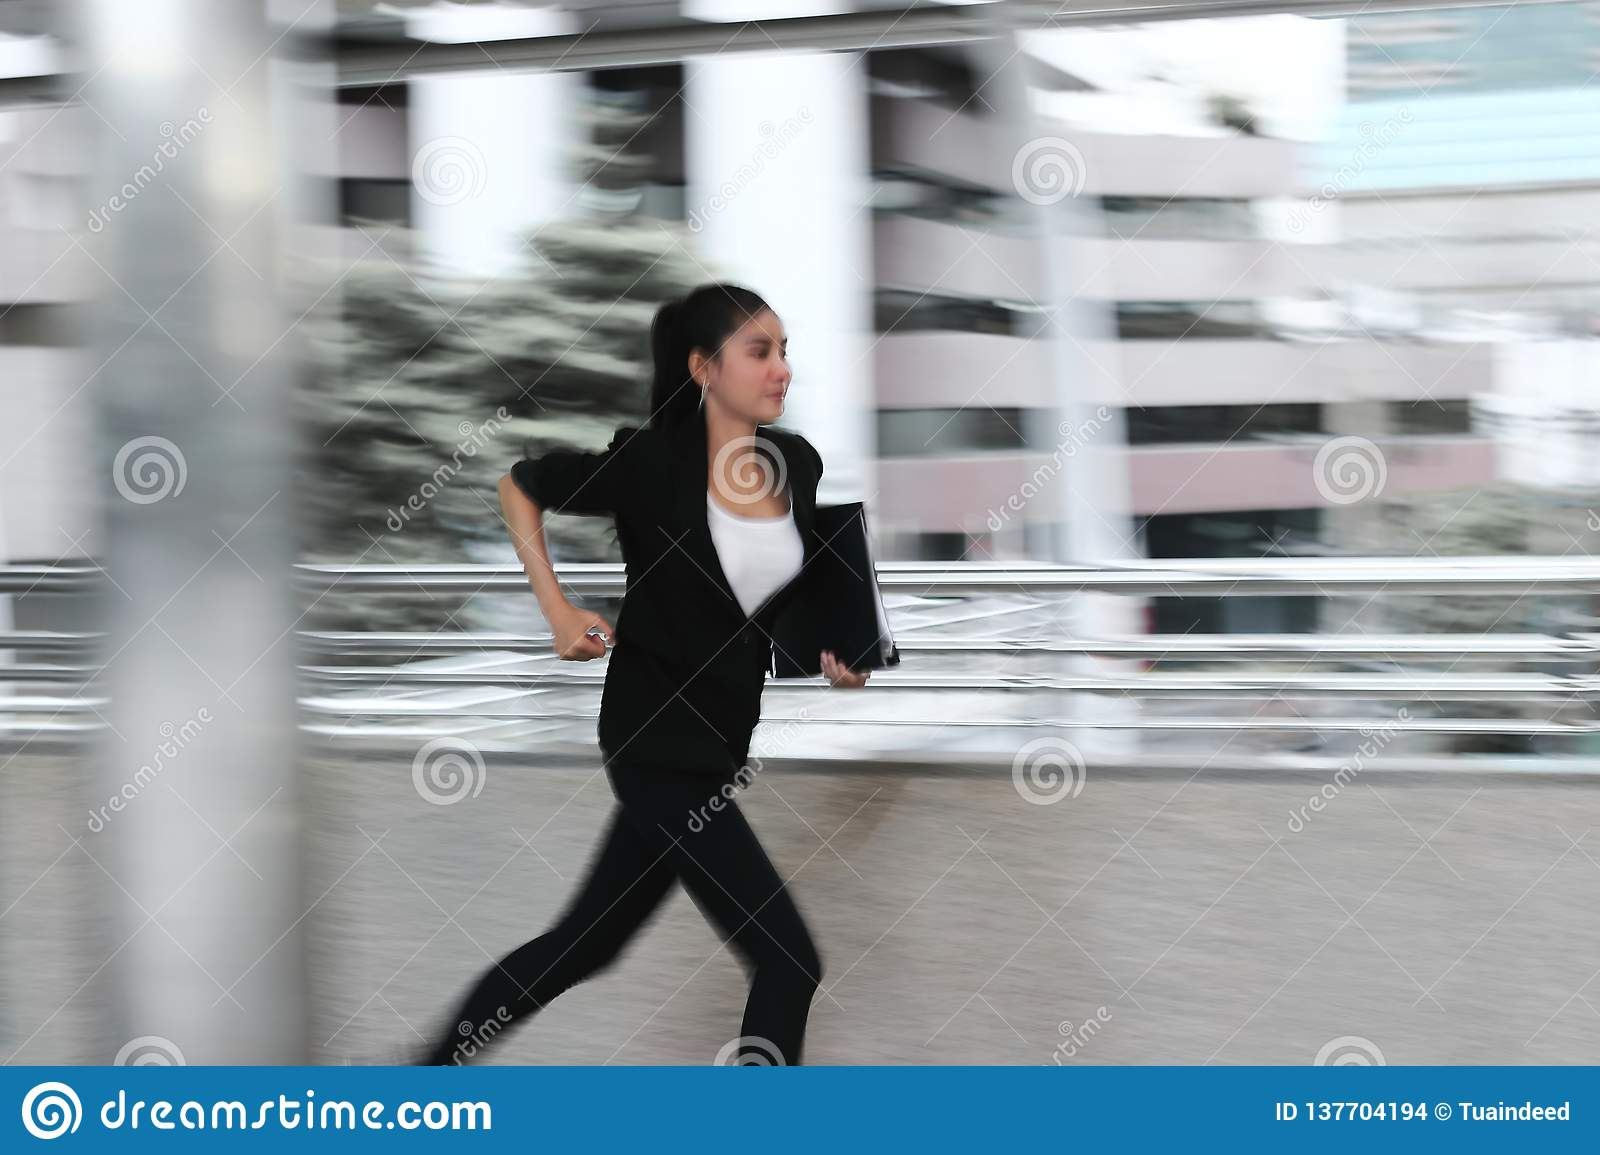 Abstract blurred motion of young Asian business woma running to work